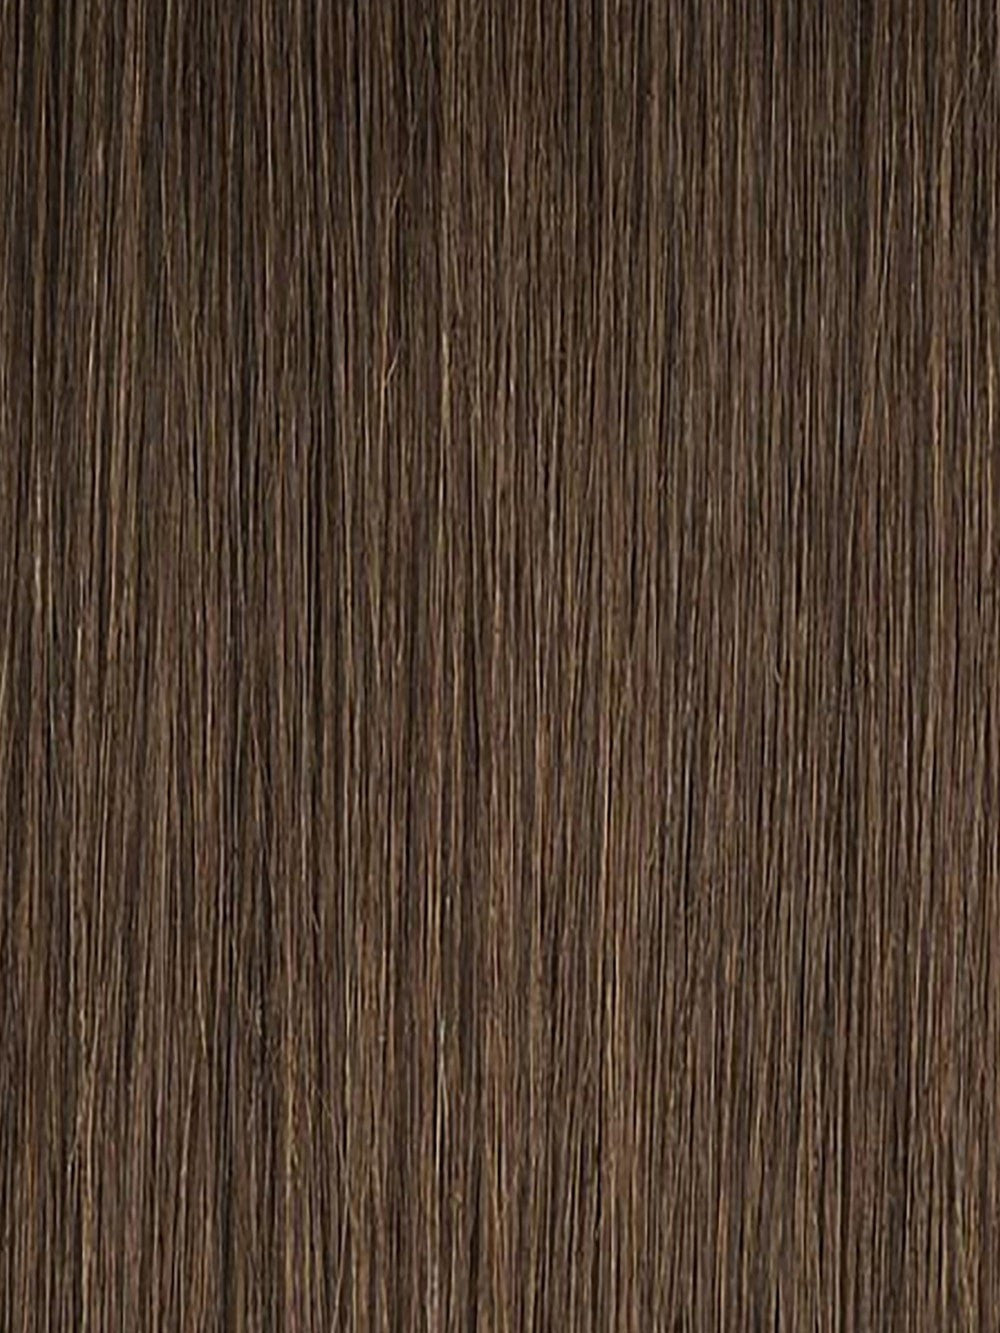 24 Remy Human Hair Clip In Extensions By Leyla Milani Hair